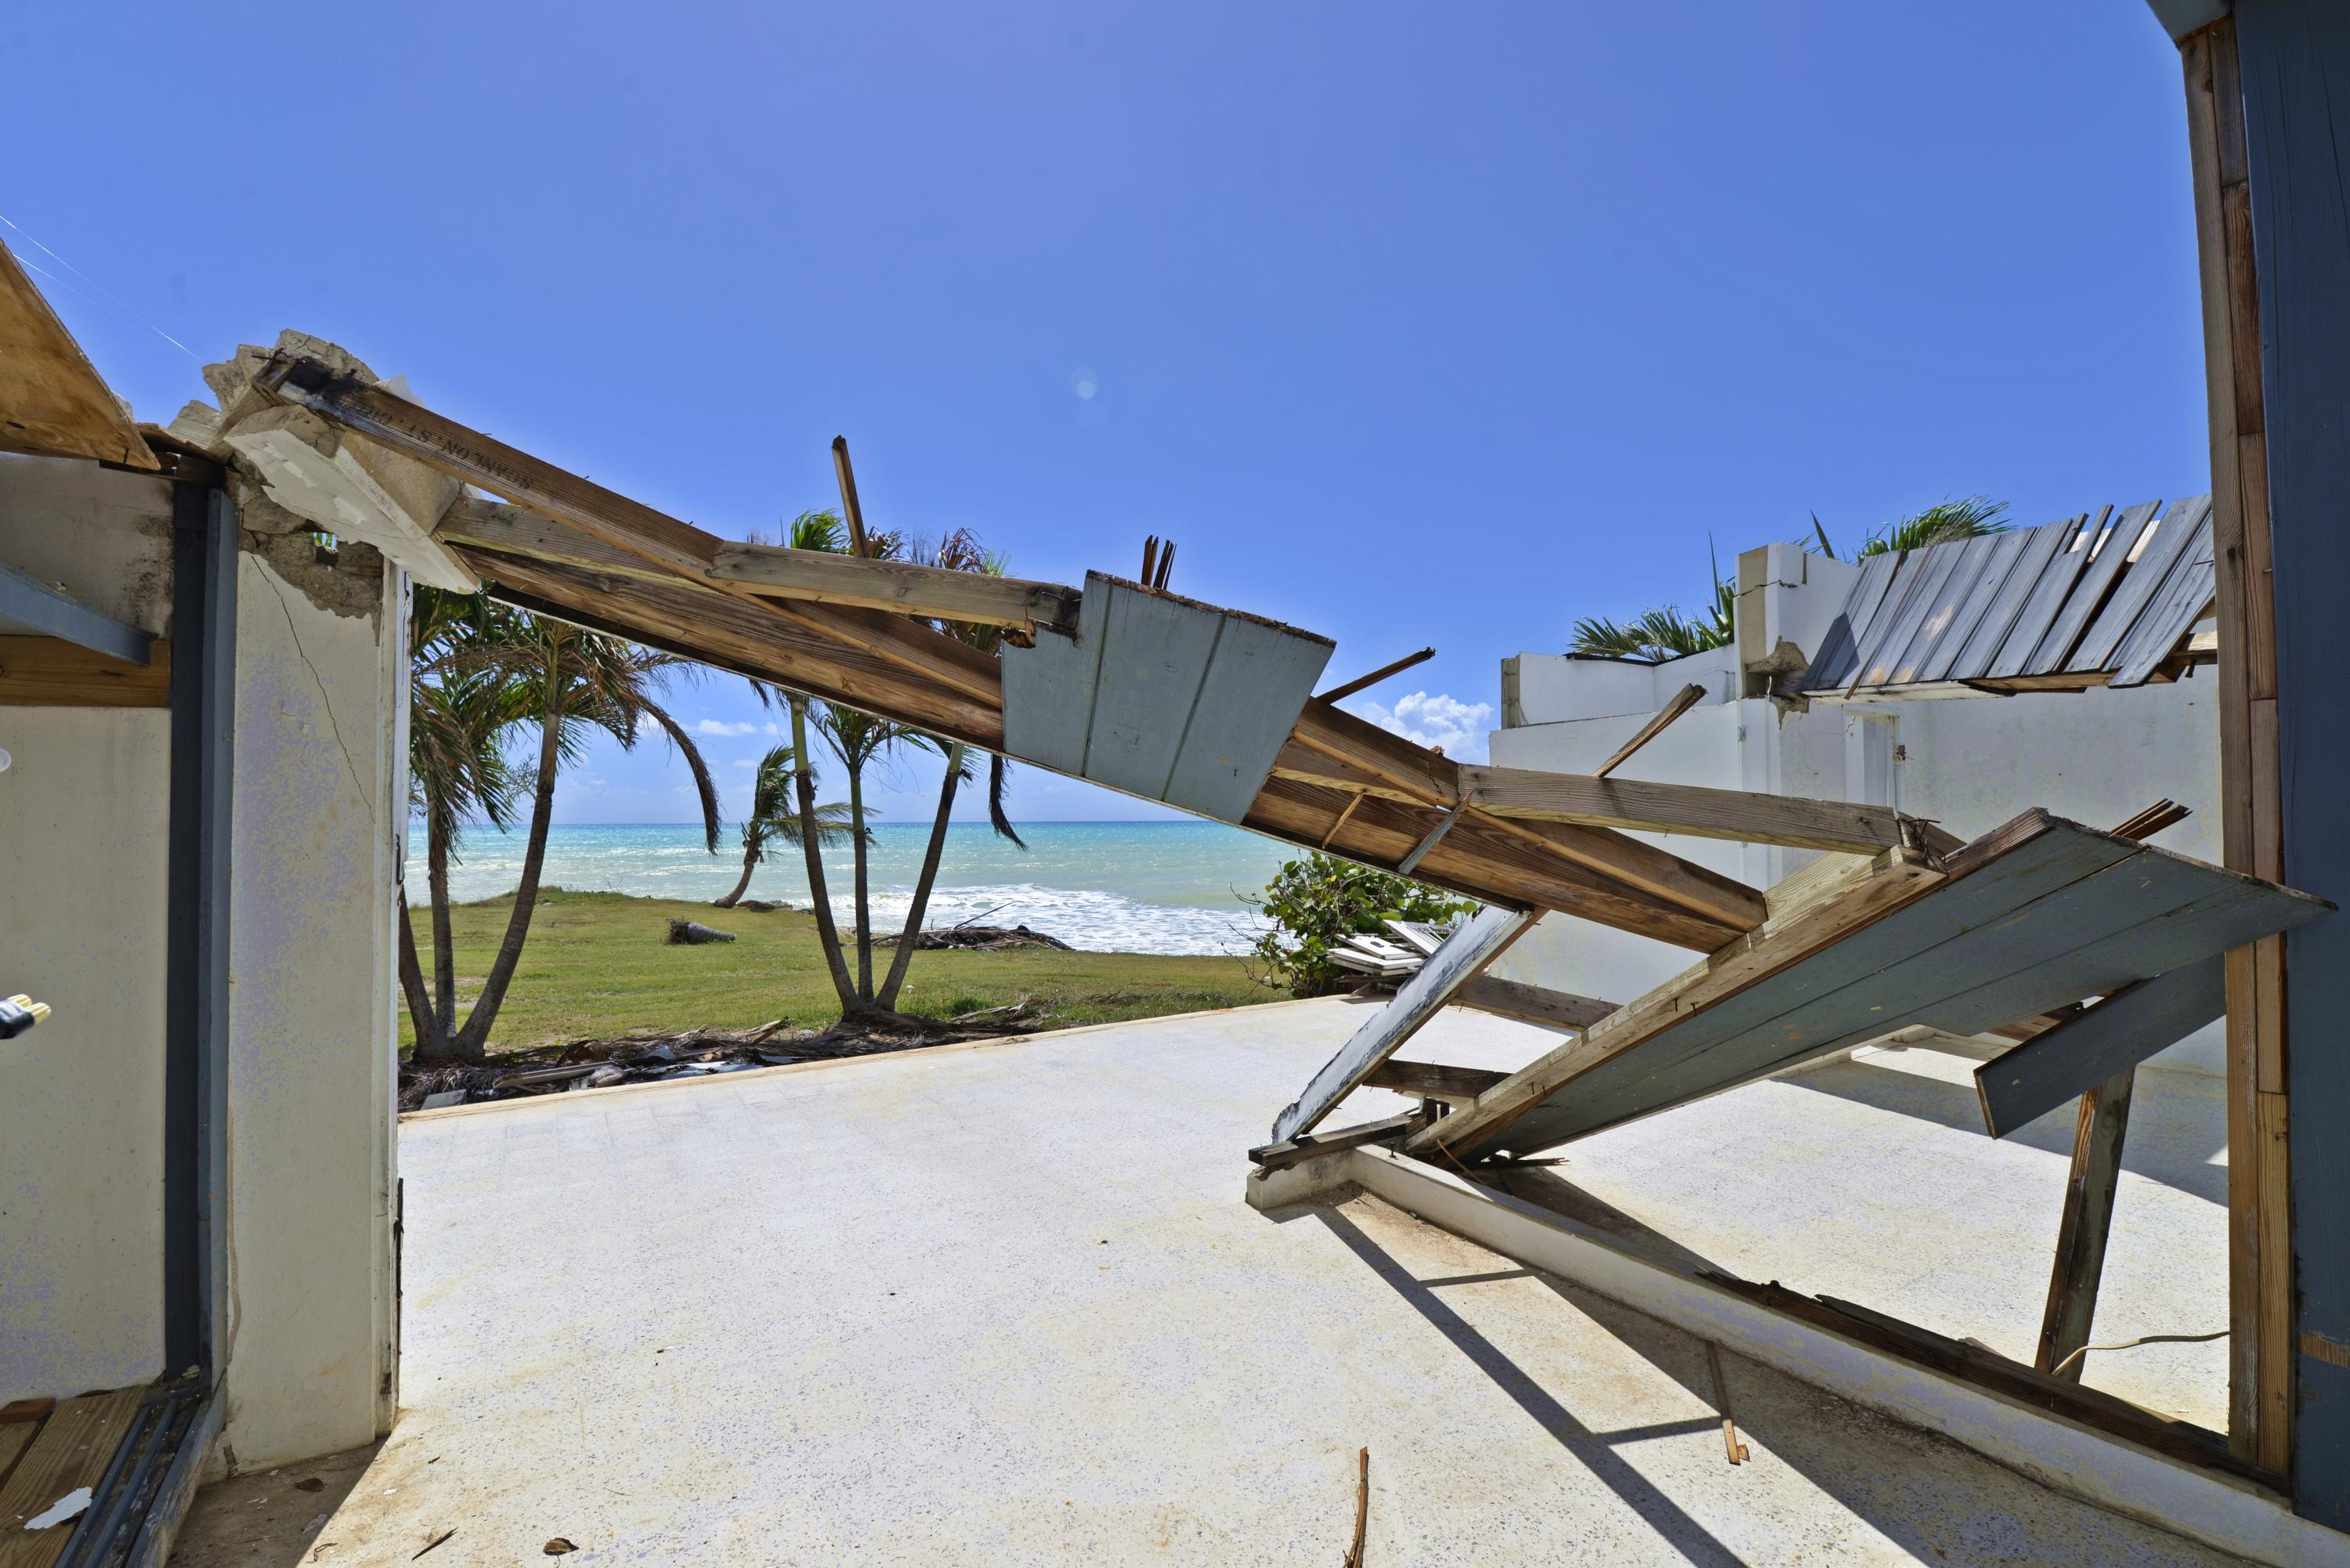 Waterfront structure - hurricane damage